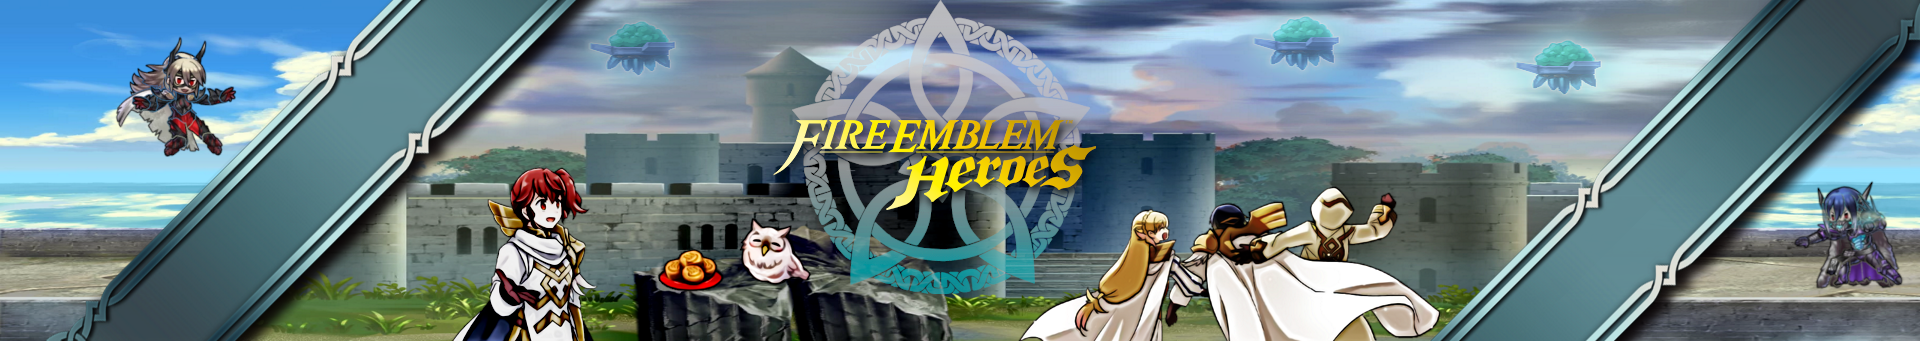 R Fireemblemheroes Banner Contest Entries June 2019 Ninian and eliwwod in kaede and shuichi's costume 2yr · snowflop · r/fireemblemheroes. r fireemblemheroes banner contest